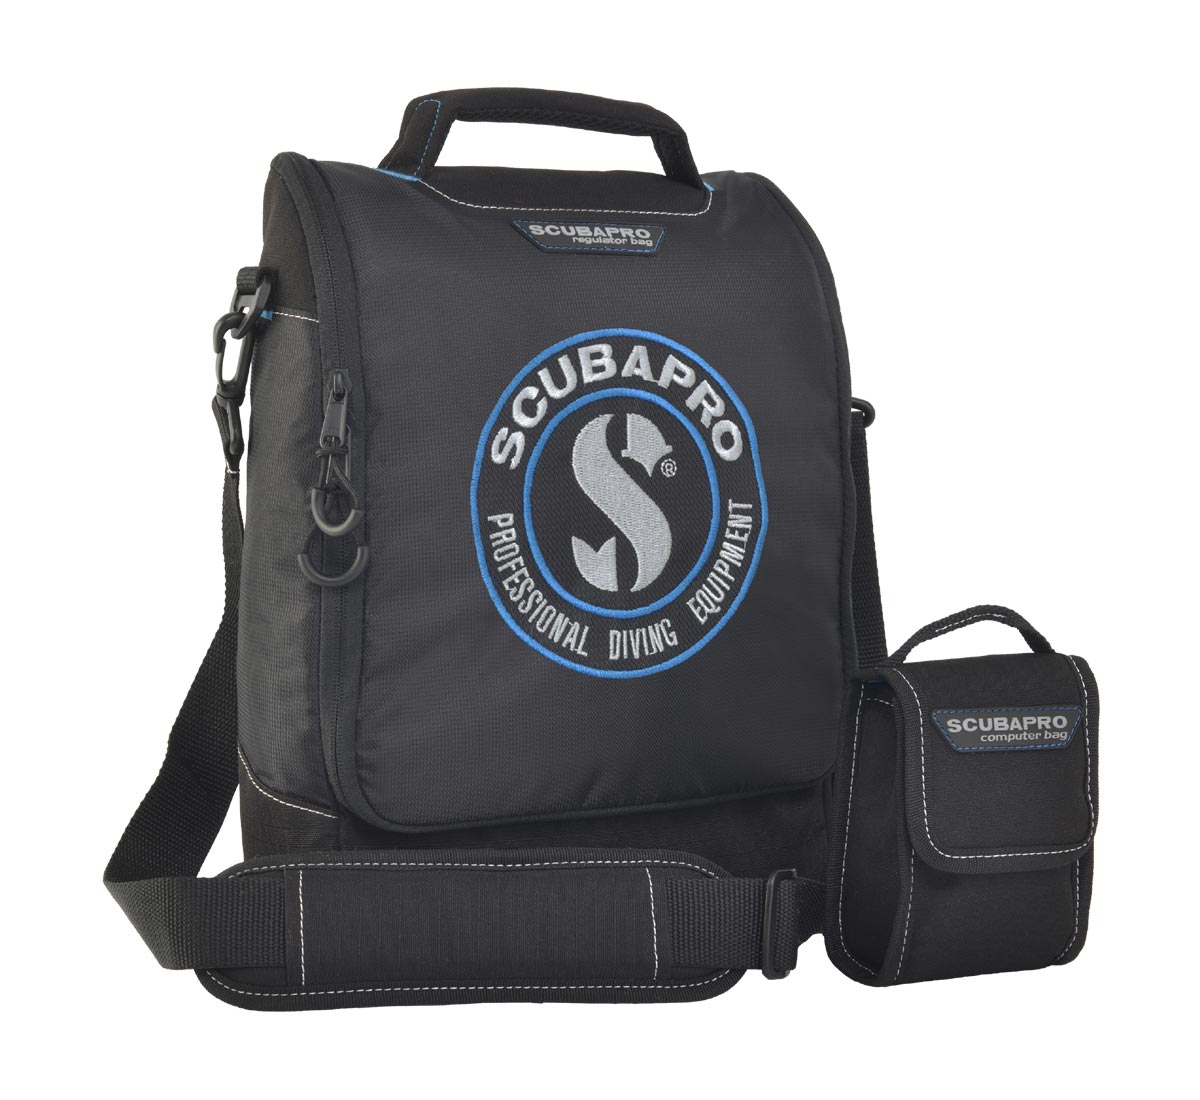 SCUBAPRO - Regulator Bag mit Computertasche